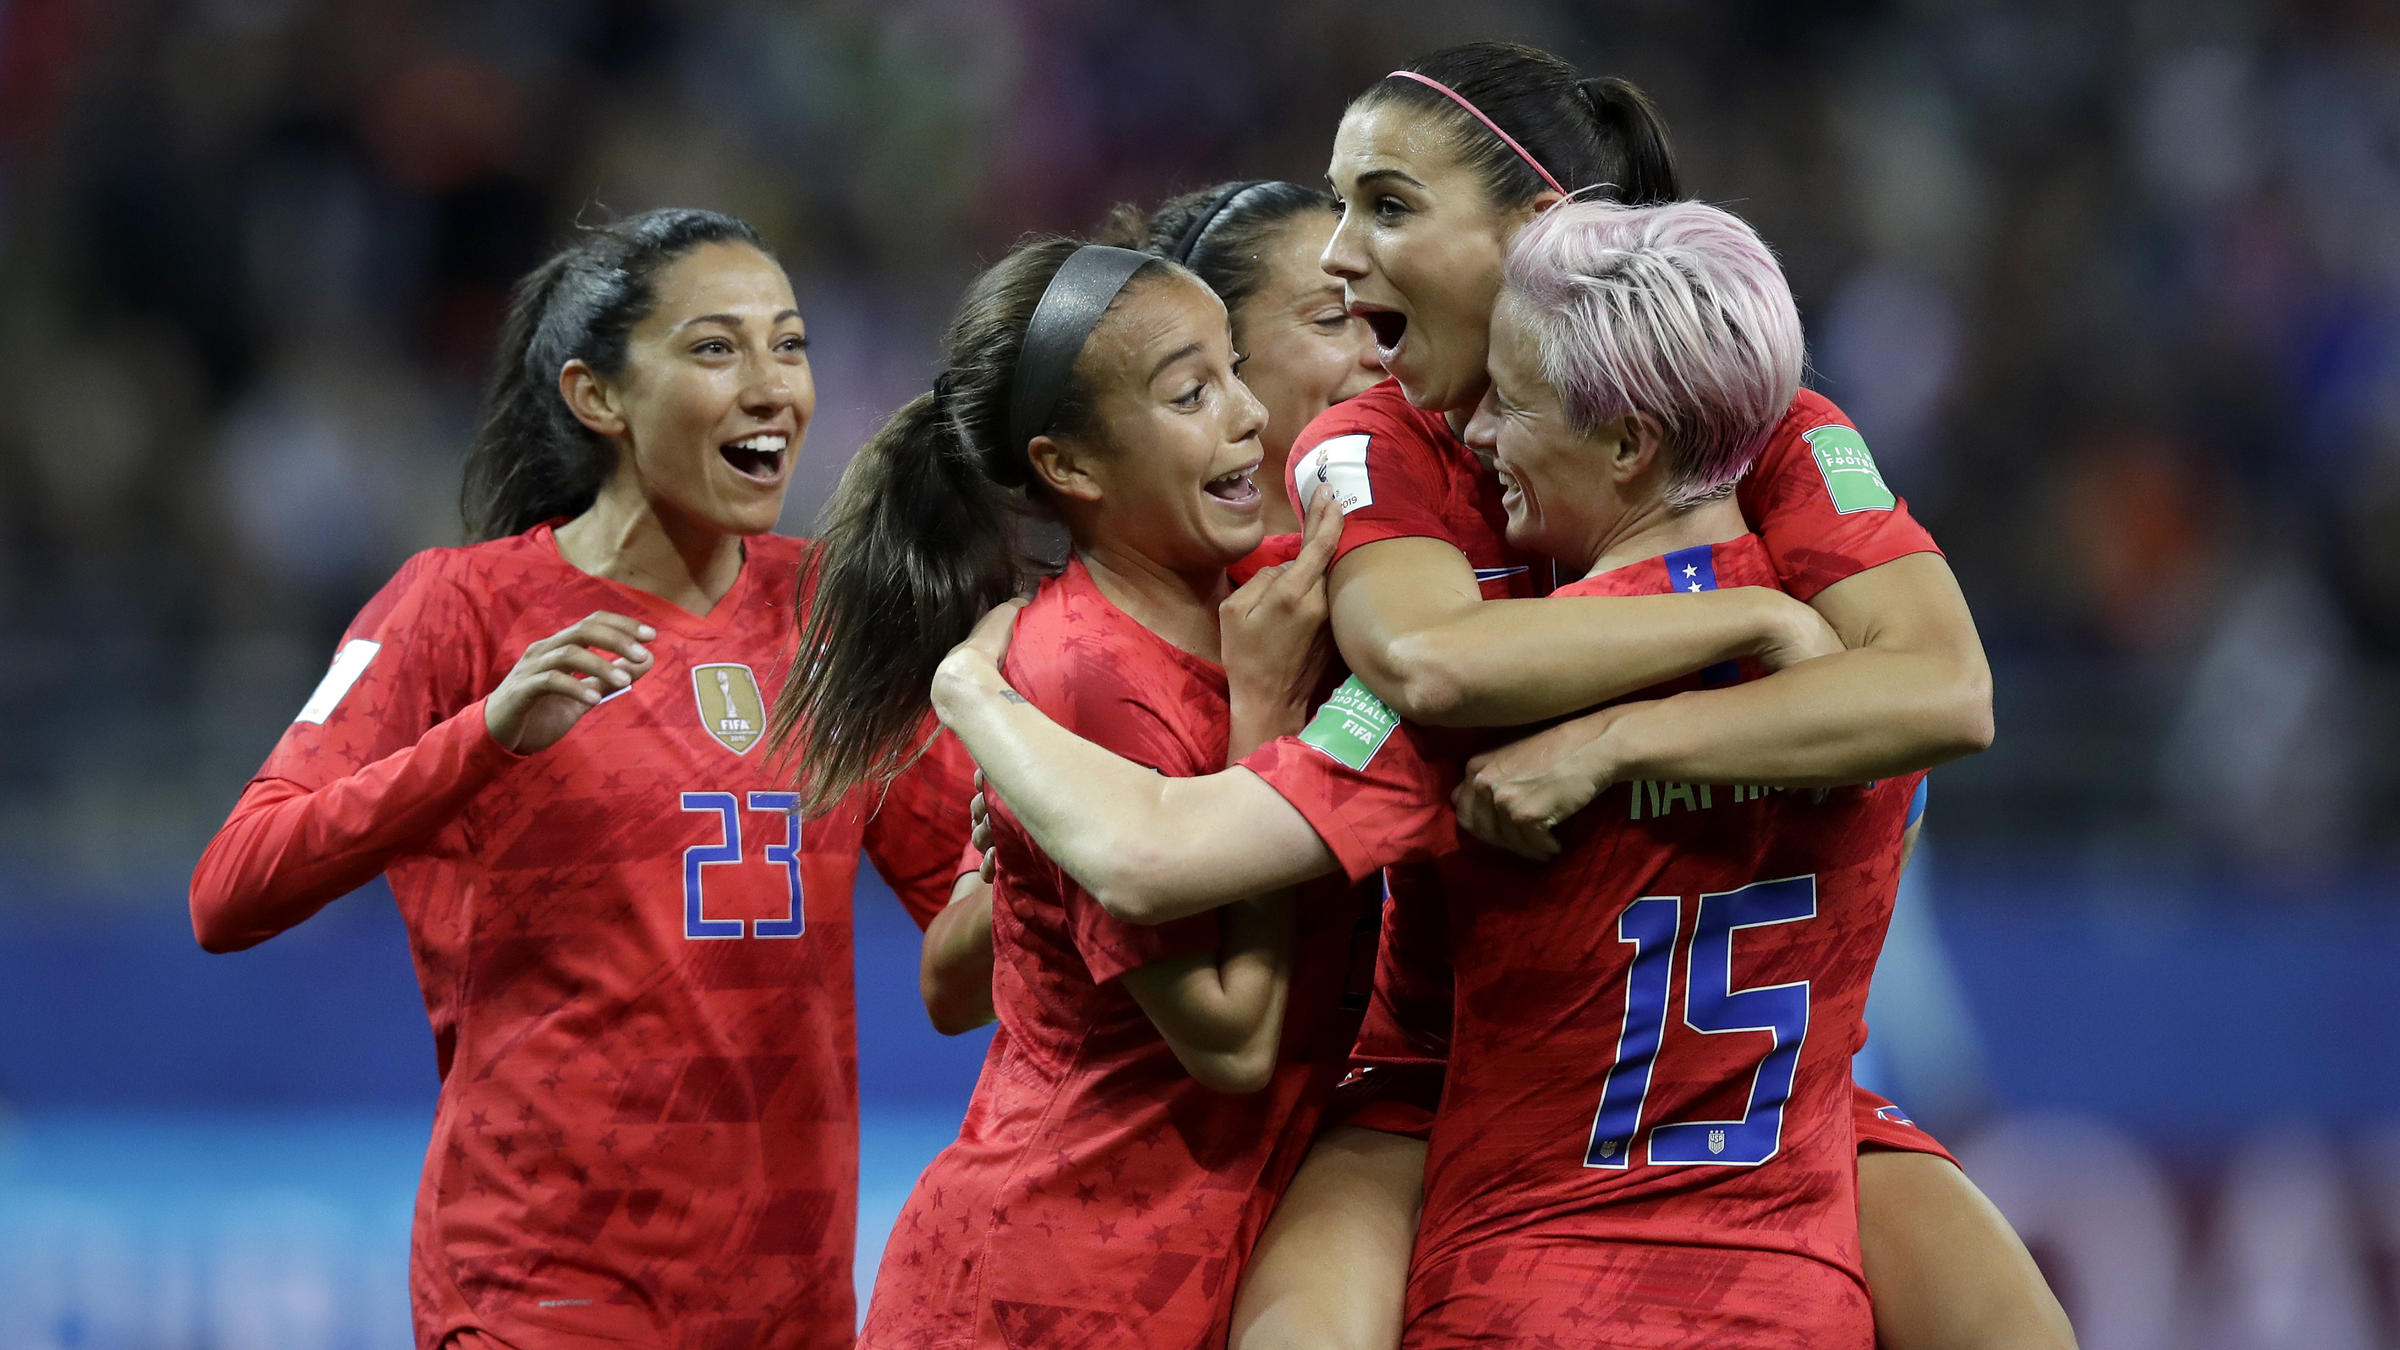 United States of America women's team, the oldest of the World Cup